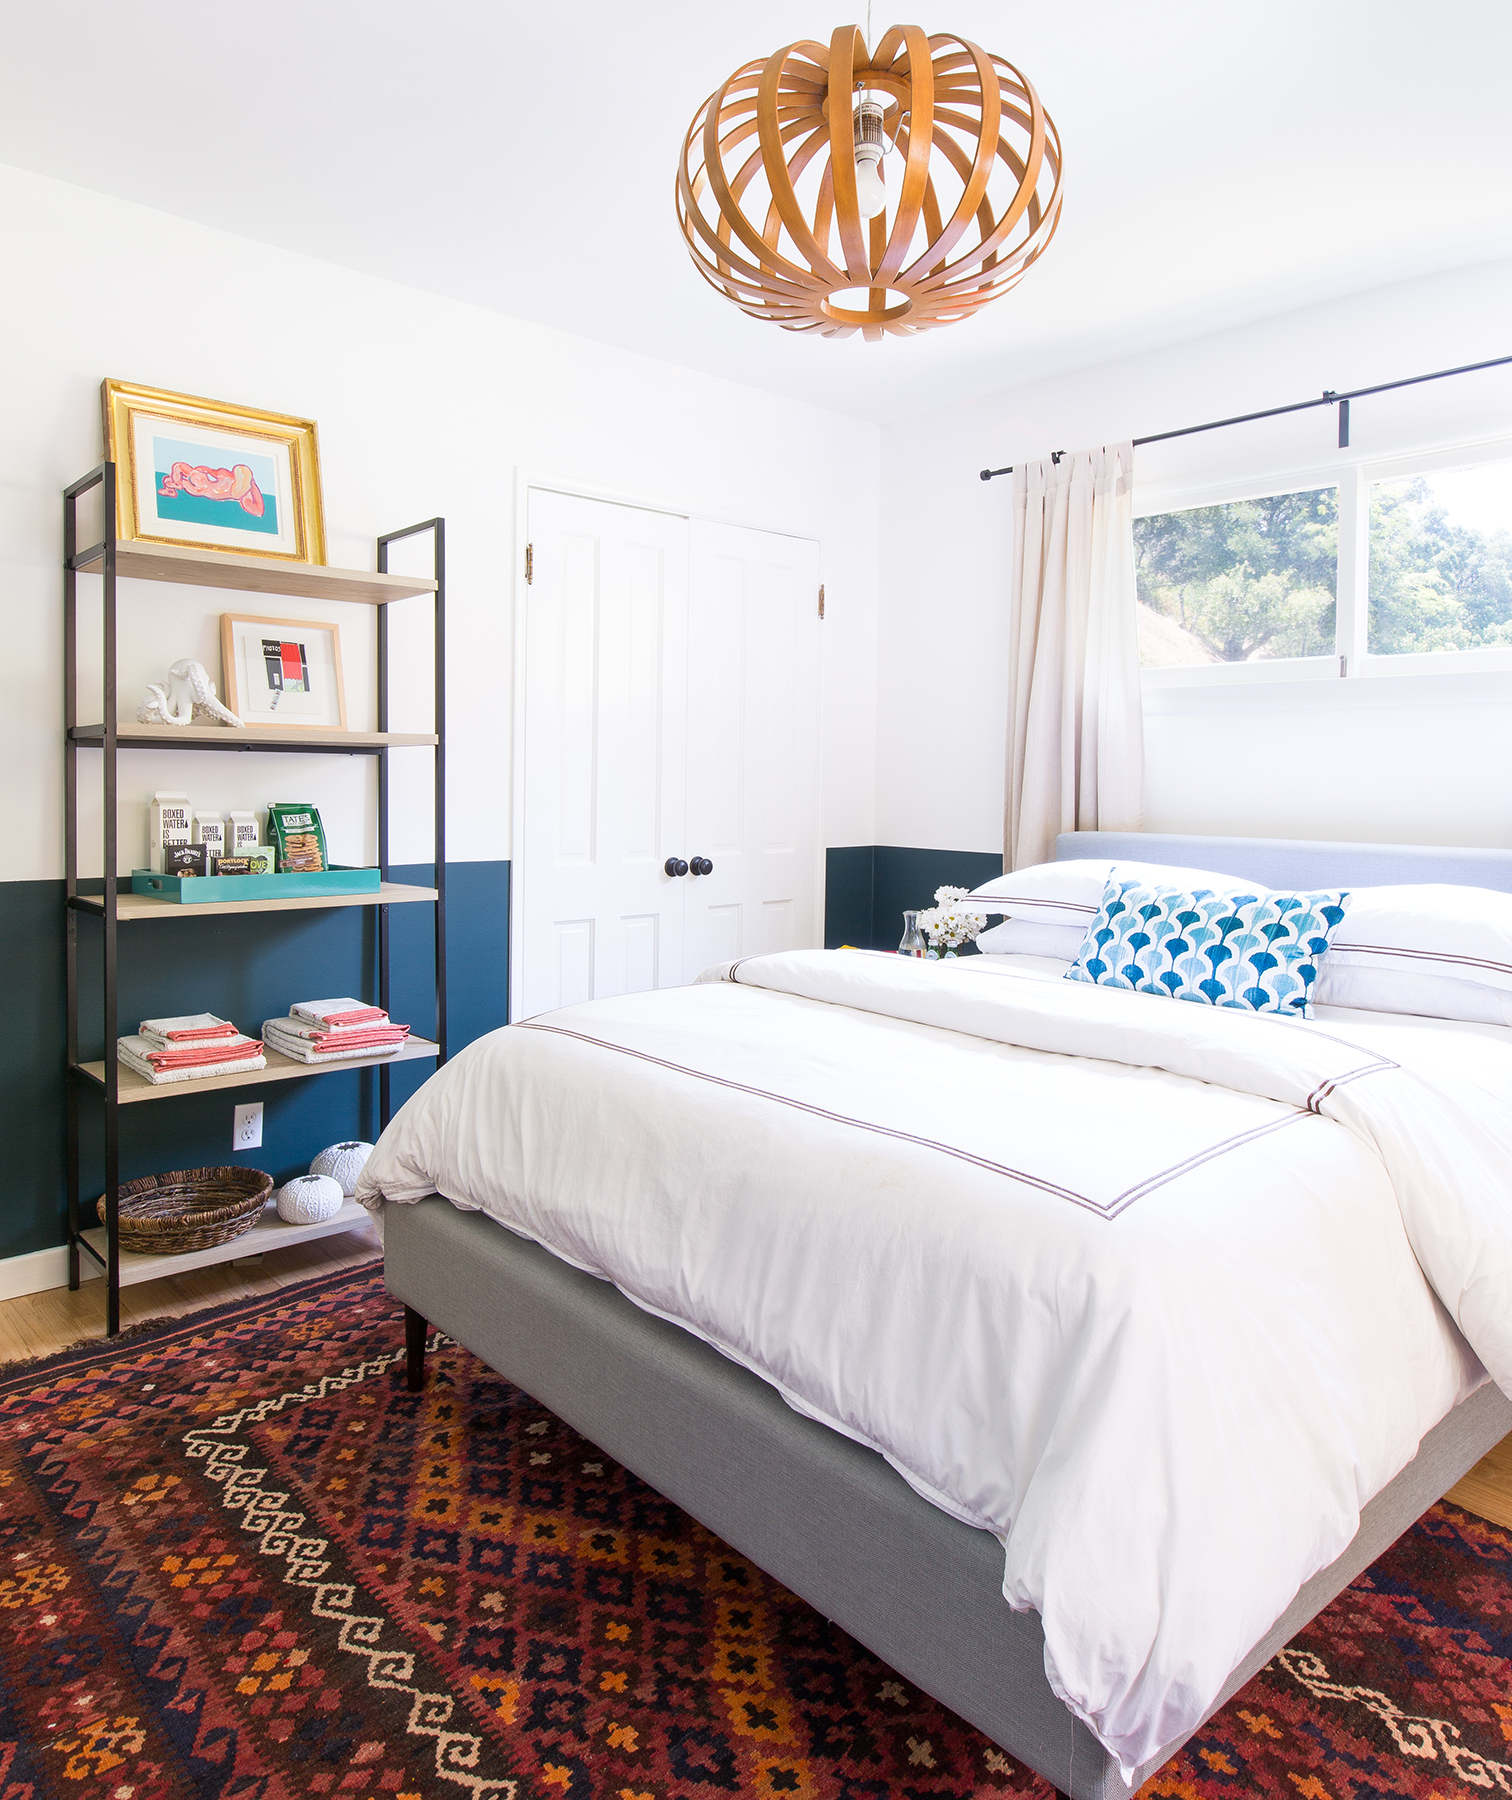 Bedroom with summer season accents